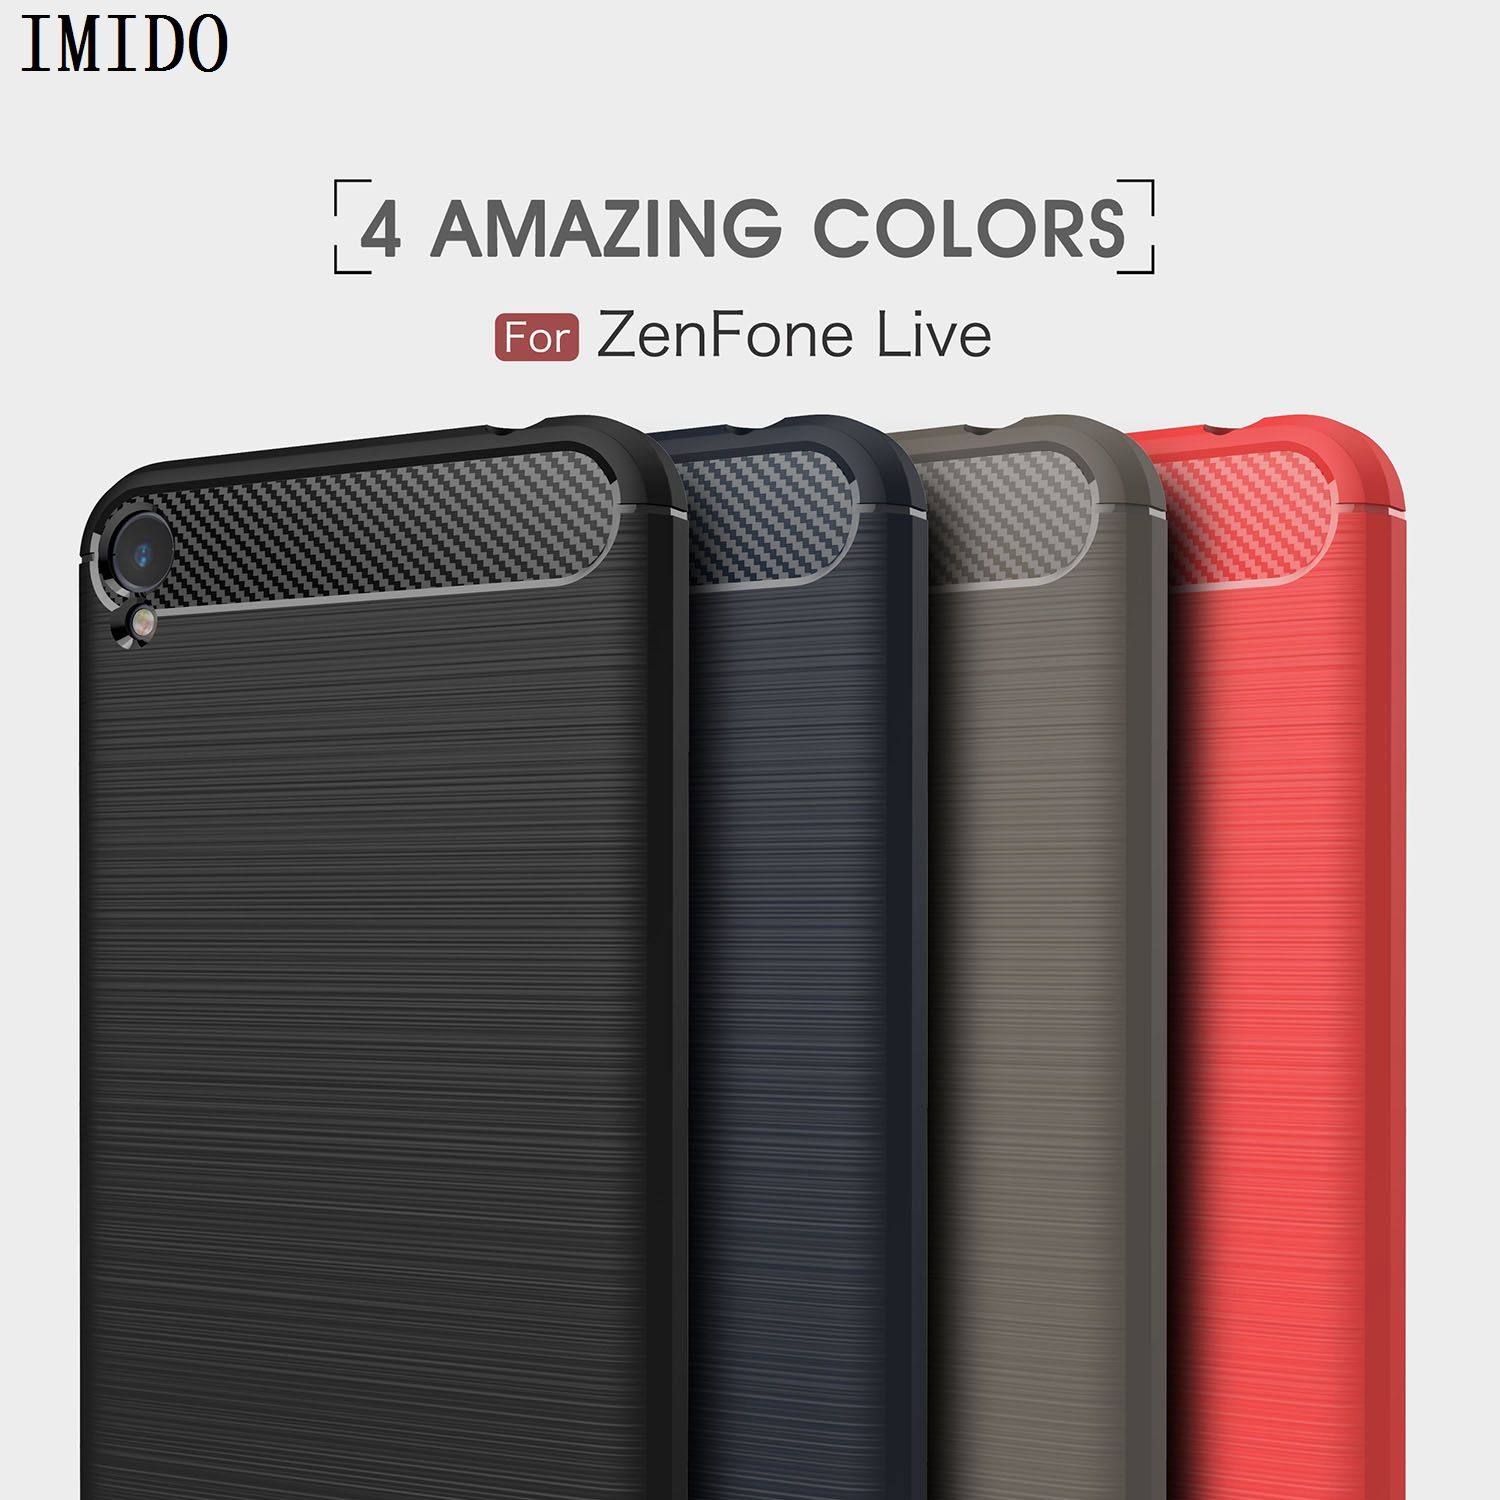 IMIDO For Asus Zenfone Live ZB501KL A007 5.0 inch Soft Carbon Fiber Anti Knock Back Cover on ZB501KL A007 5.0 inch